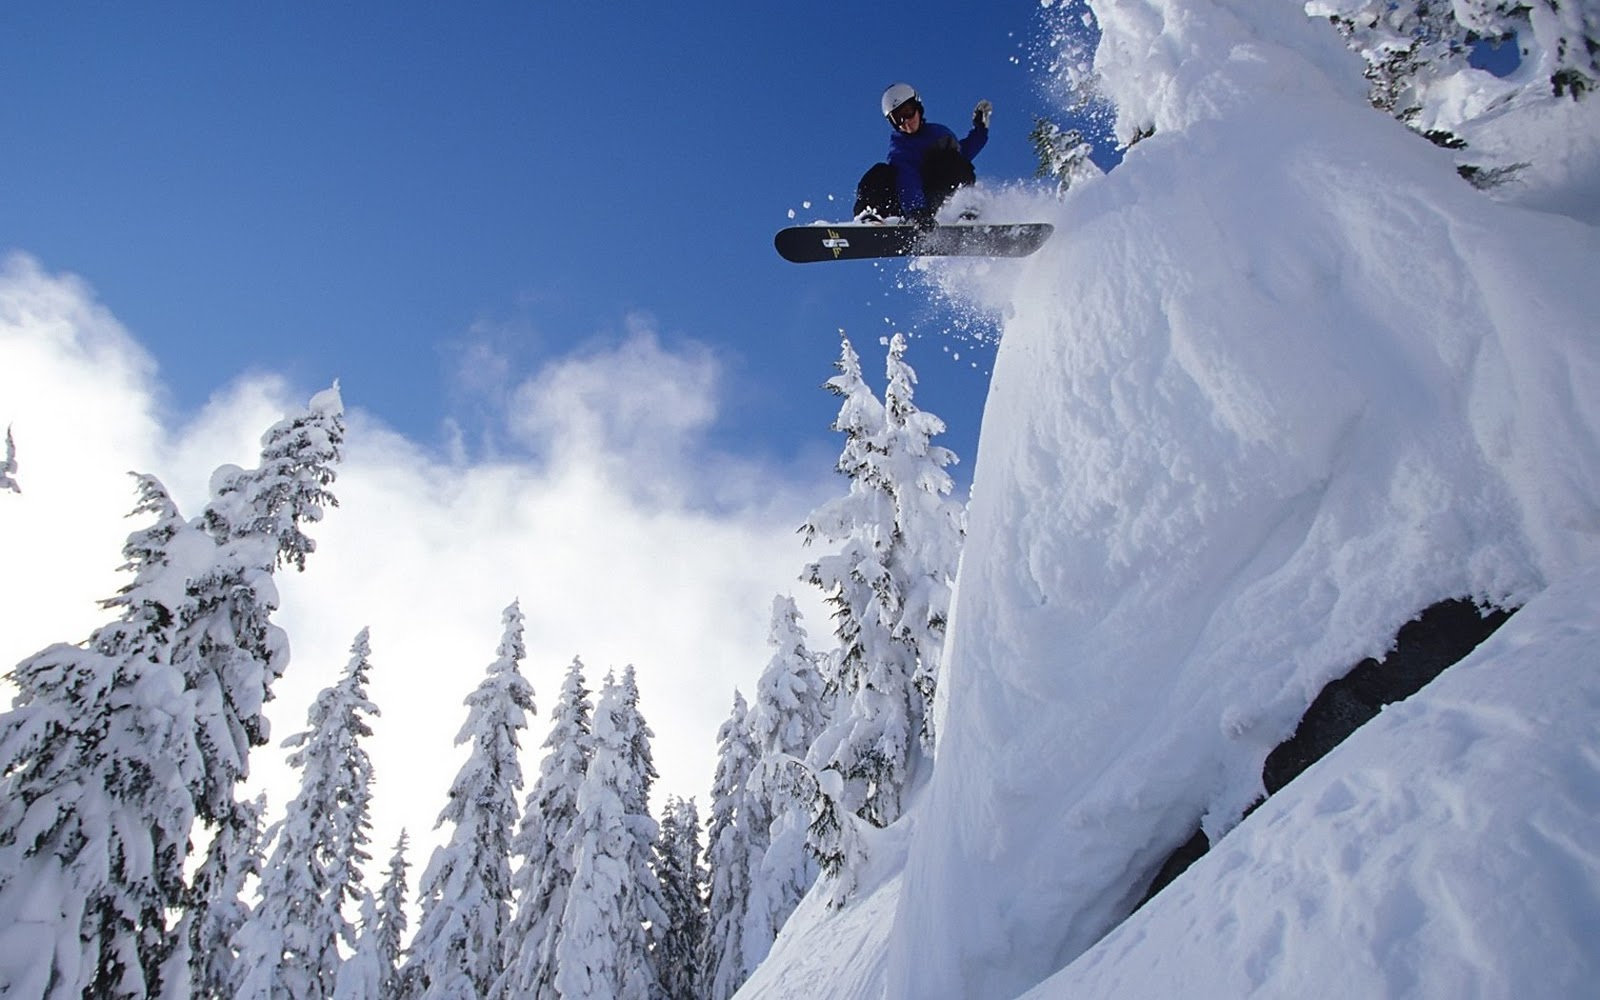 Cool Snowboard Pictures - Snowbording Wallpapers | Cool Things Collection